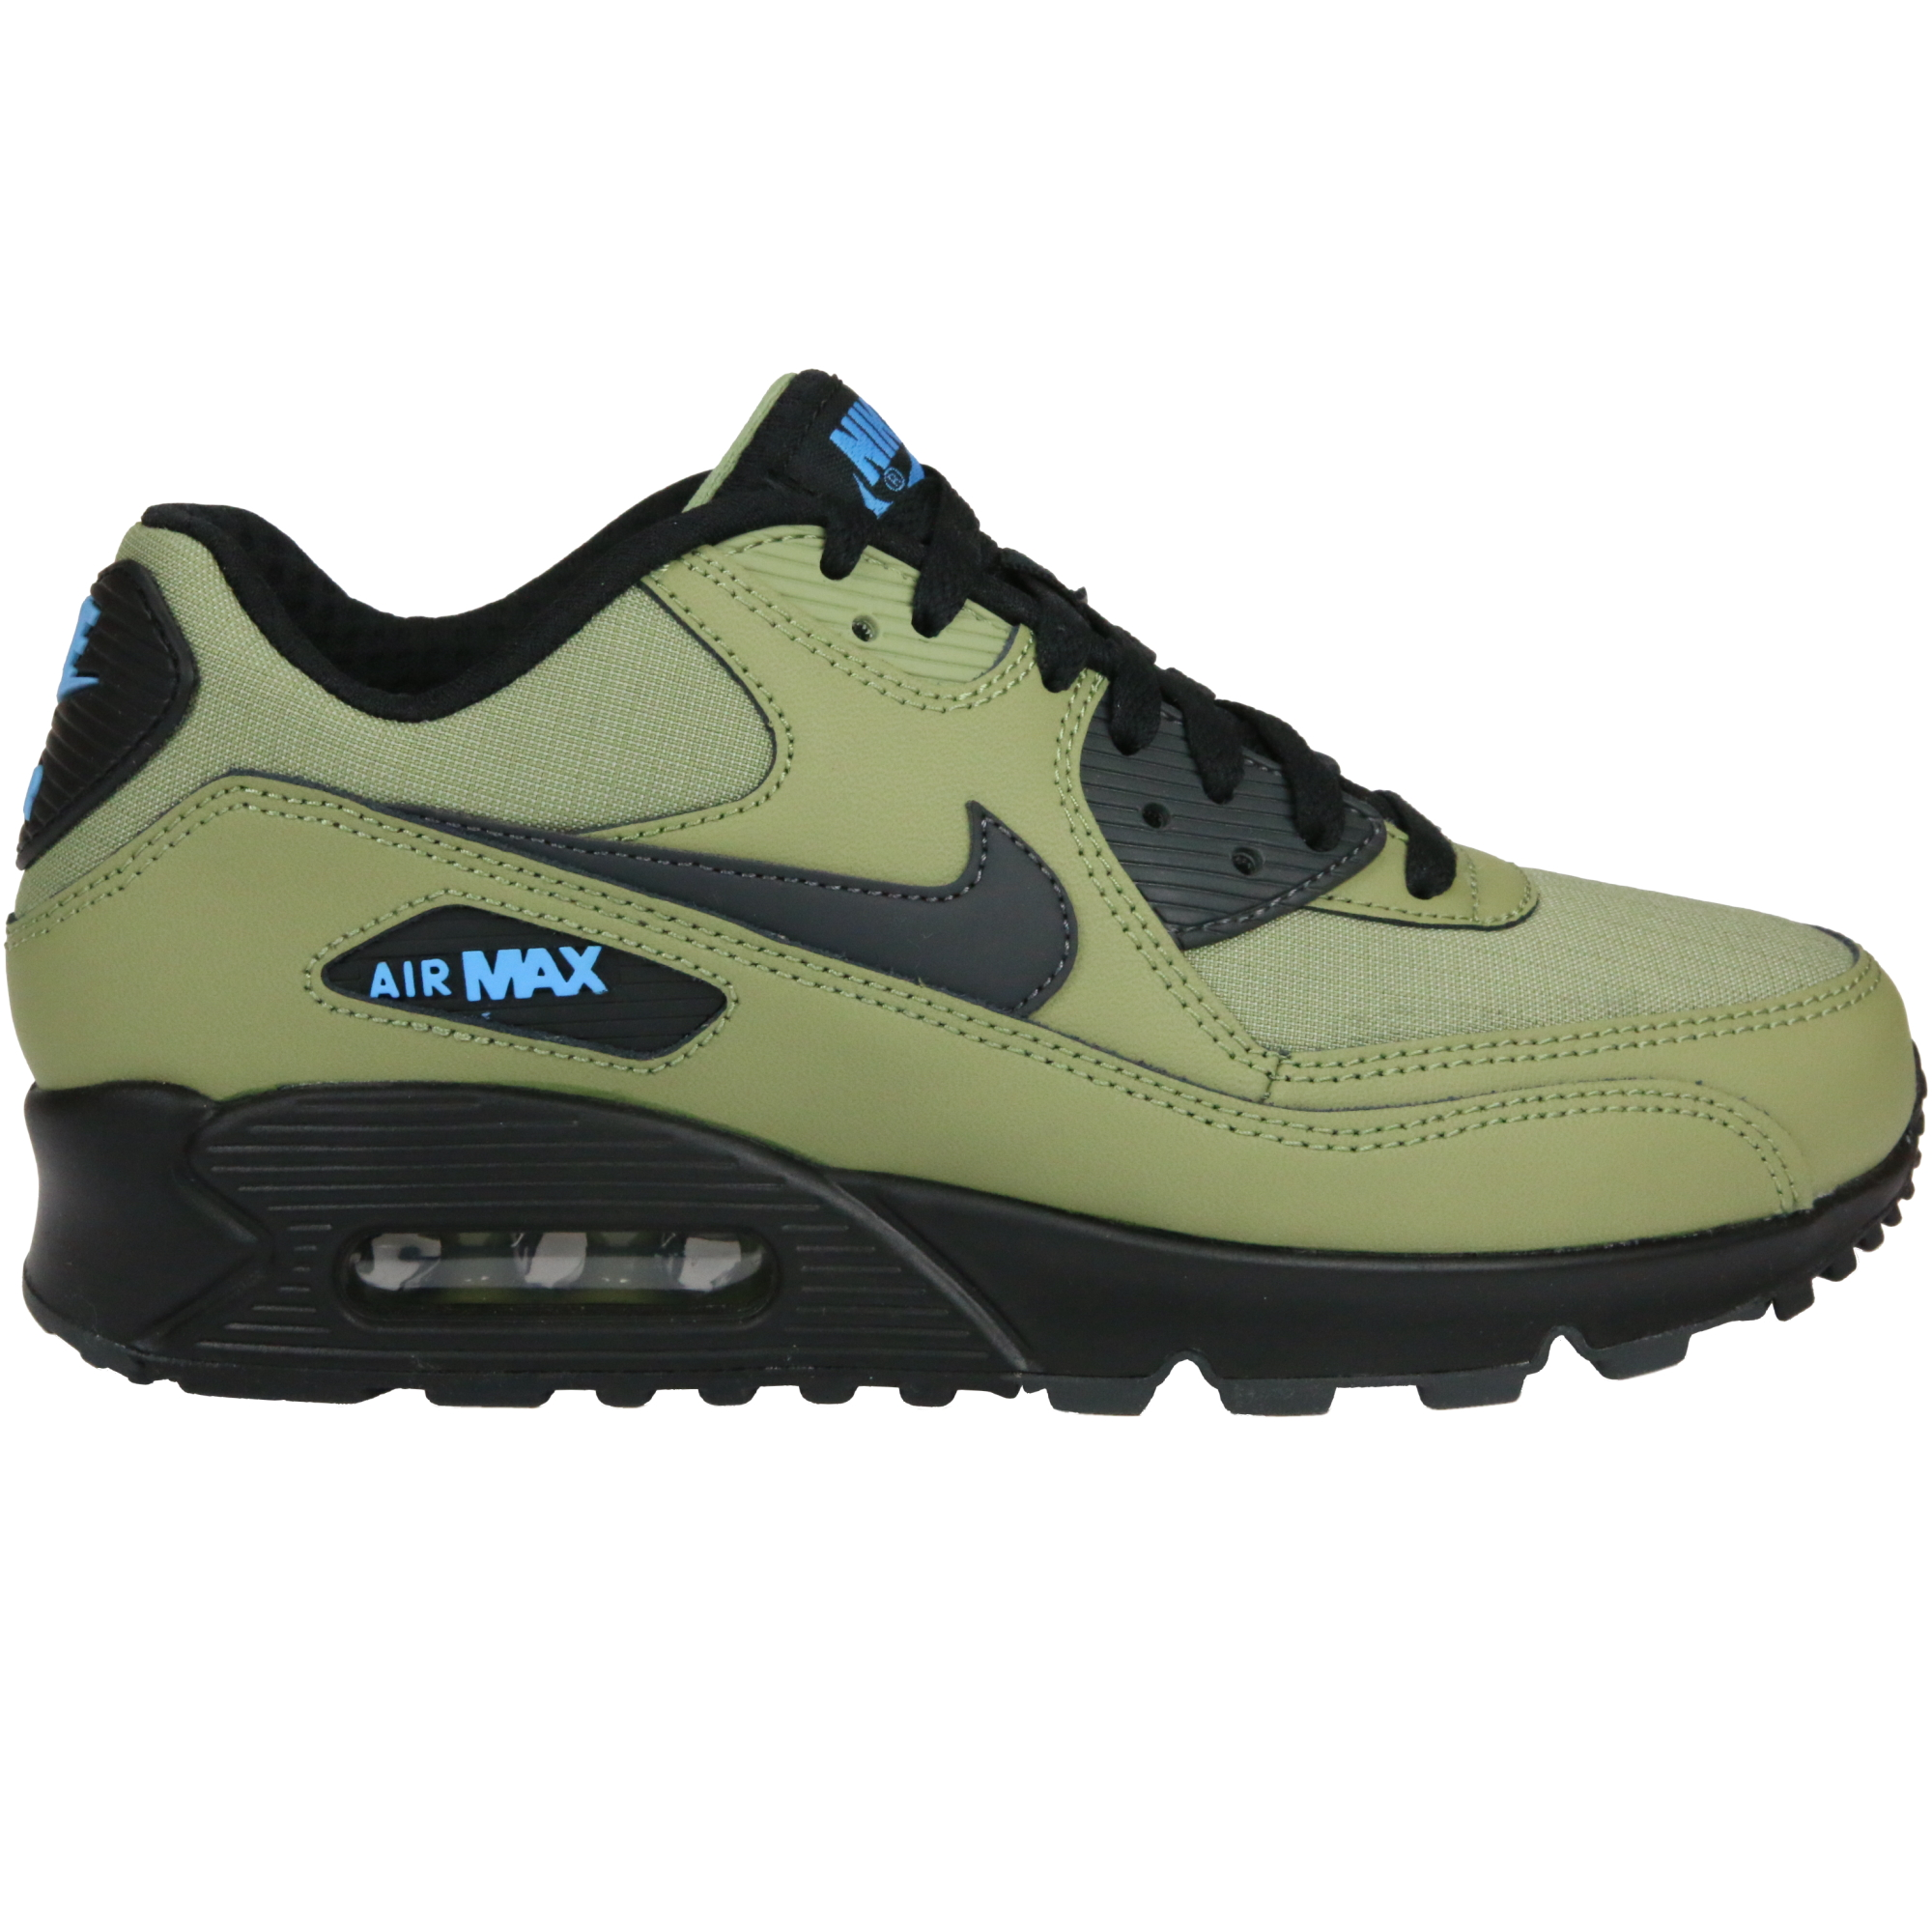 nike air max 90 essential schuhe turnschuhe sneaker herren echtleder grau blau ebay. Black Bedroom Furniture Sets. Home Design Ideas